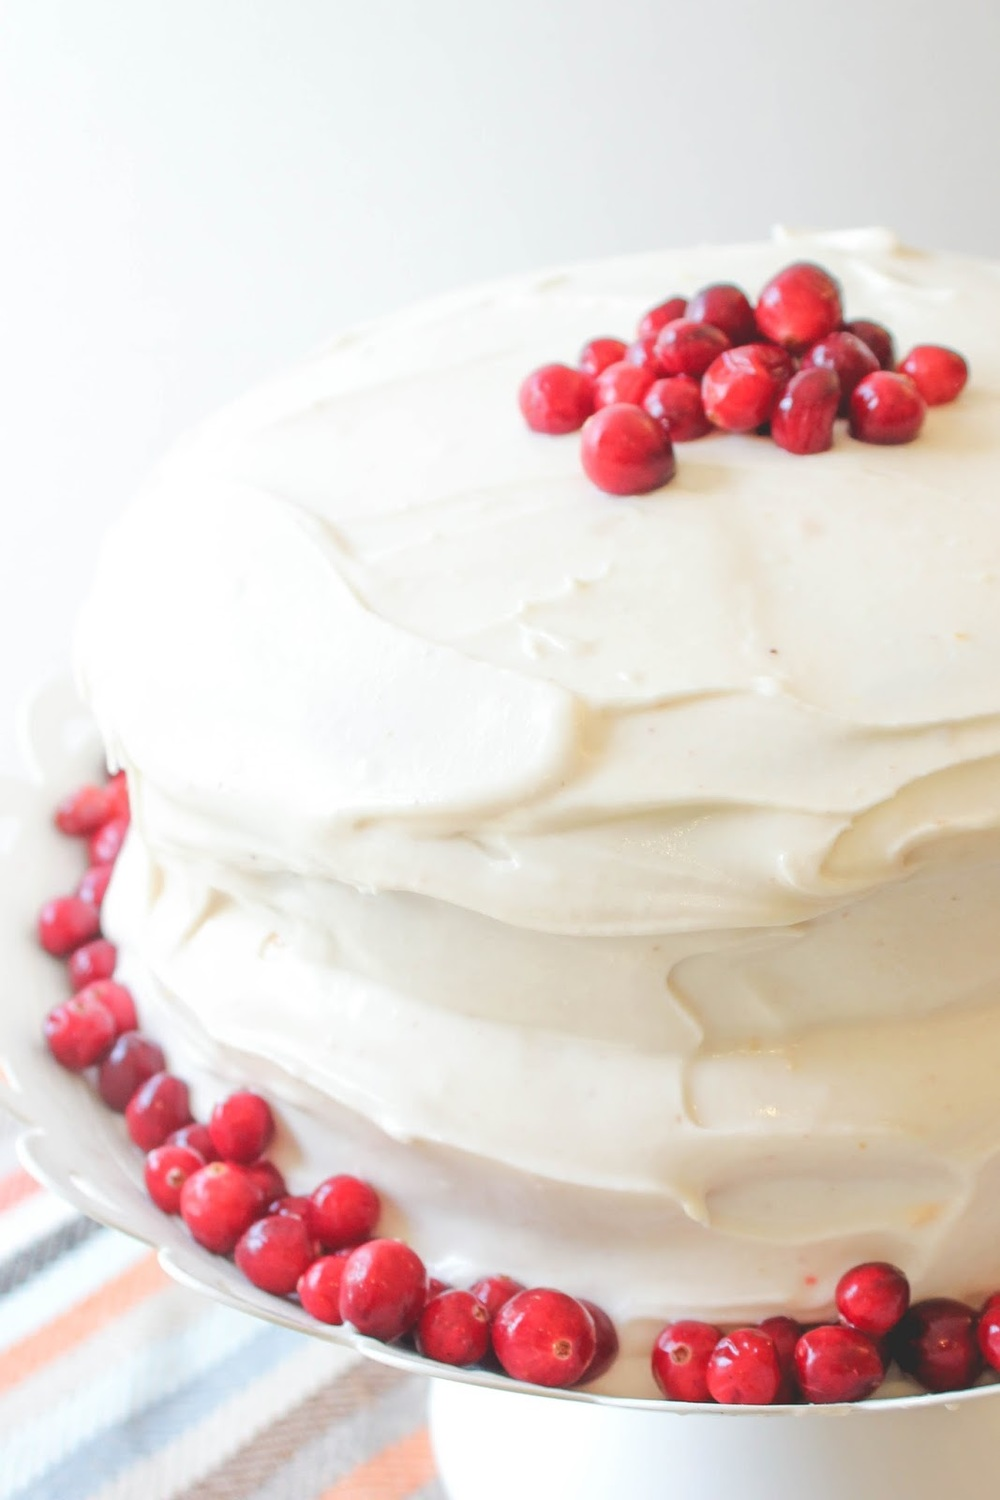 How beautiful is this Pumpkin Layer Cake with Cream Cheese Frosting?! And it's no ordinary cream cheese frosting, it's flavored with cranberry and orange zest. I don't think it gets much better than that. http://www.littlecityadventures.com/2015/11/recipe-pumpkin-layer-cake-with-cran.html #littlecitykitchen